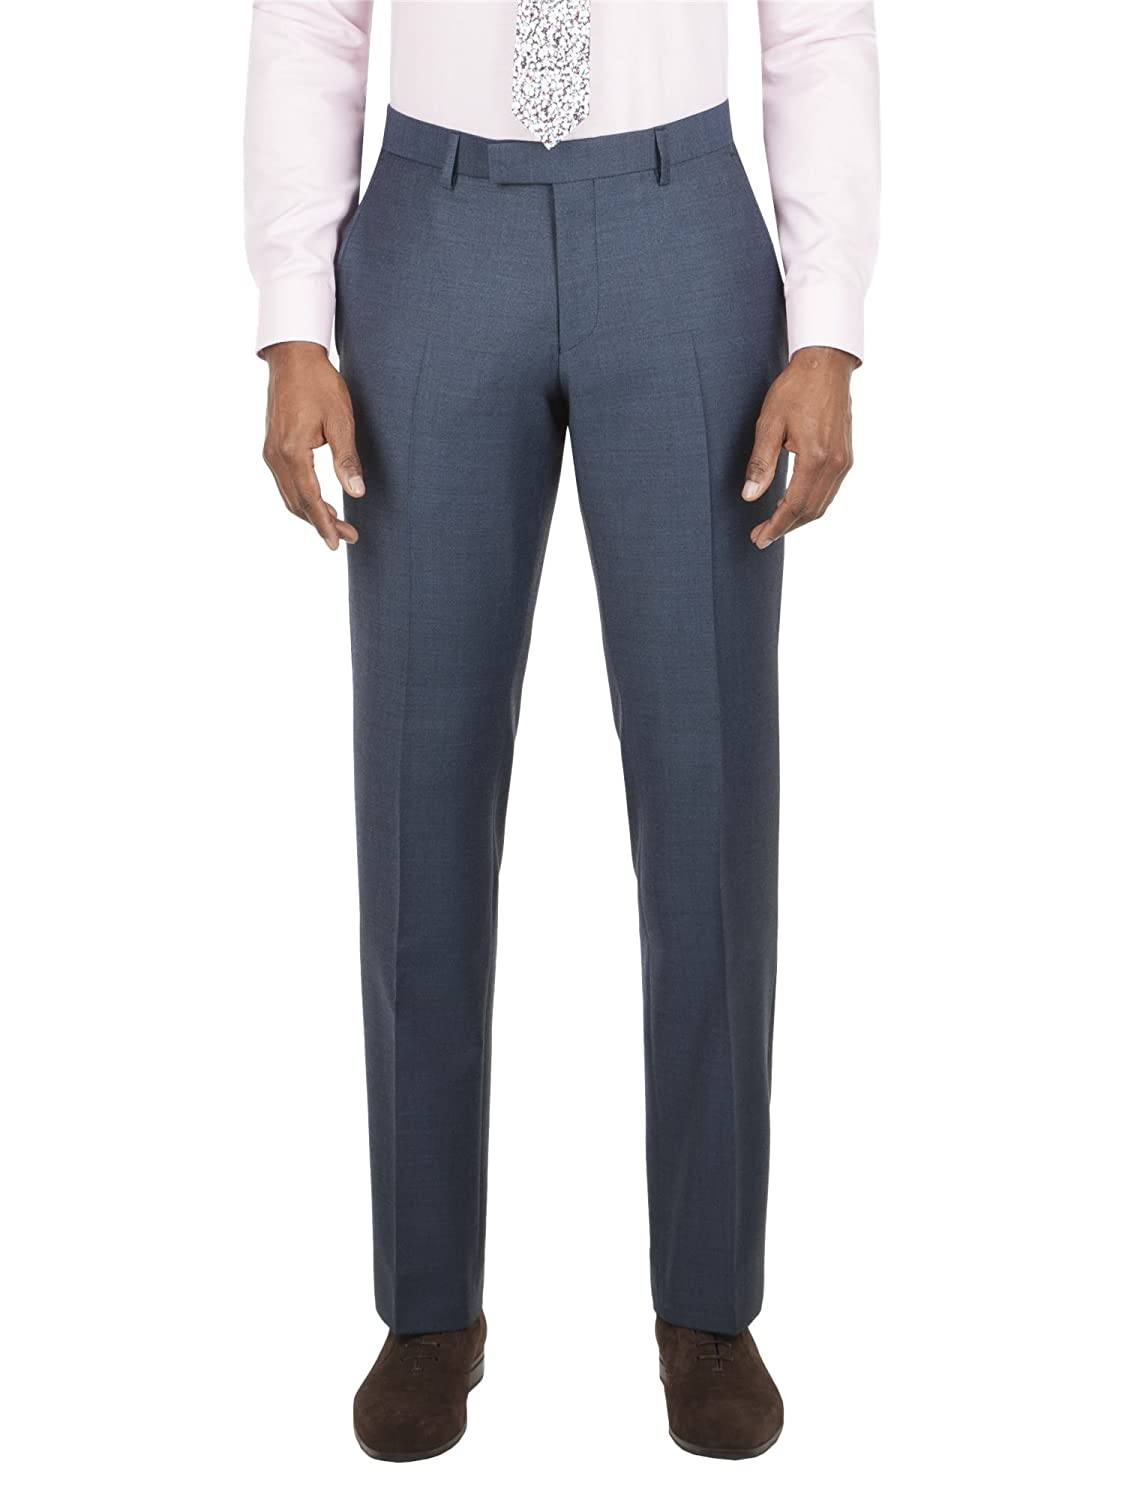 Racing Green Airforce Jaspe Trouser 0043245 by Suit Direct